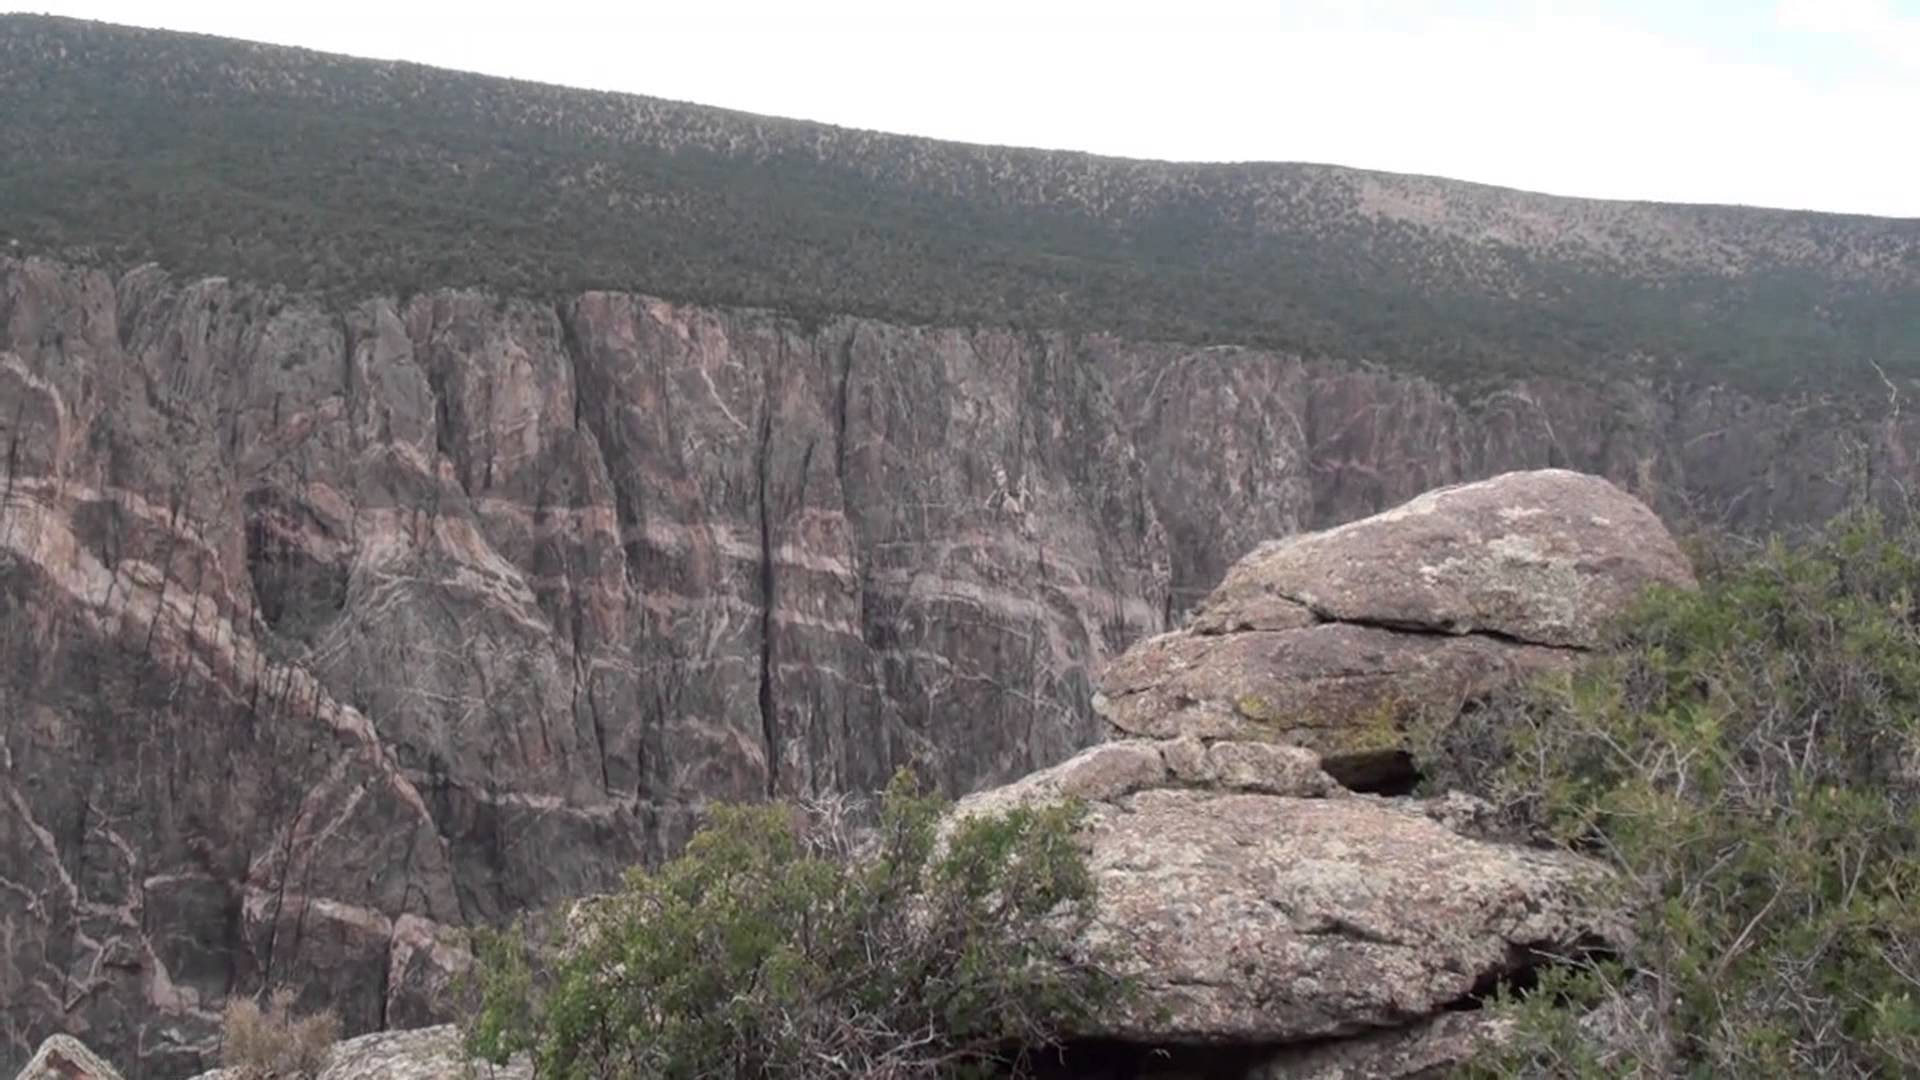 Black Canyon of the Gunnison in Colorado